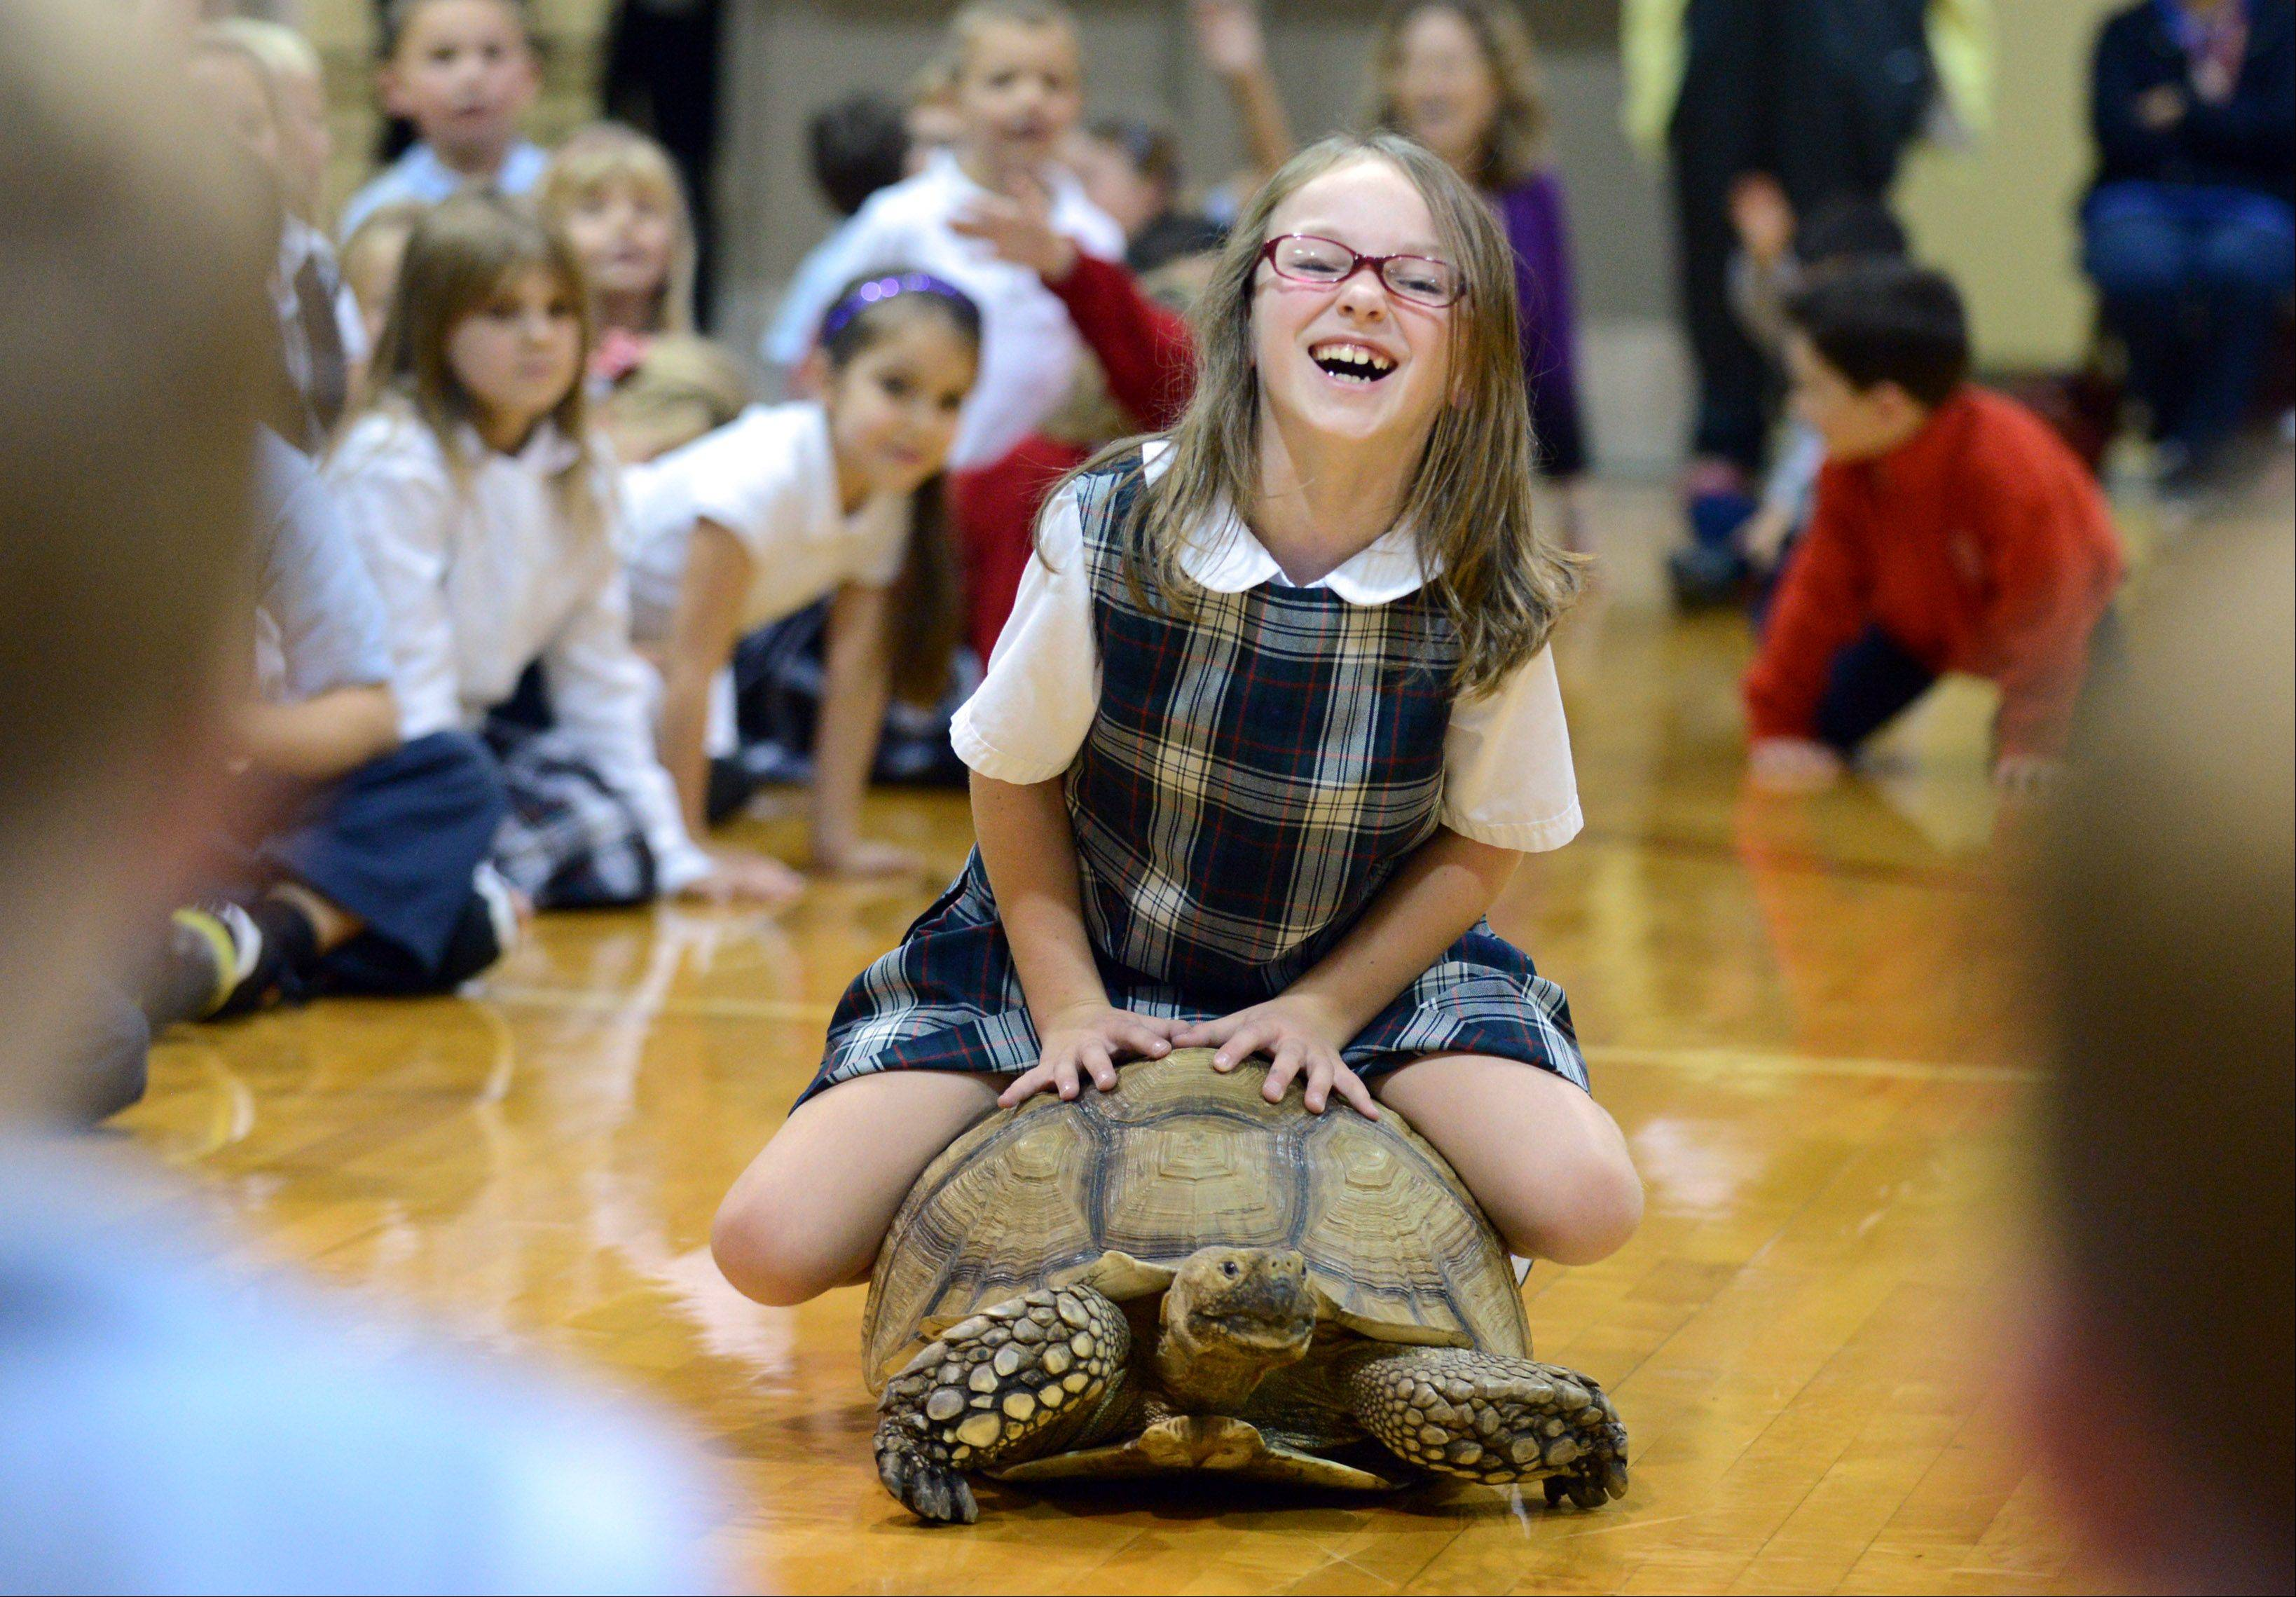 2nd-grader Emma Woodford gets to ride a tortoise during a visit from Dave Dinaso's Traveling World of Reptiles at St. Peter School in Geneva Tuesday. Kids also got to get hands on with a monitor lizard, African bullfrog, an alligator and a Burmese python during the program.